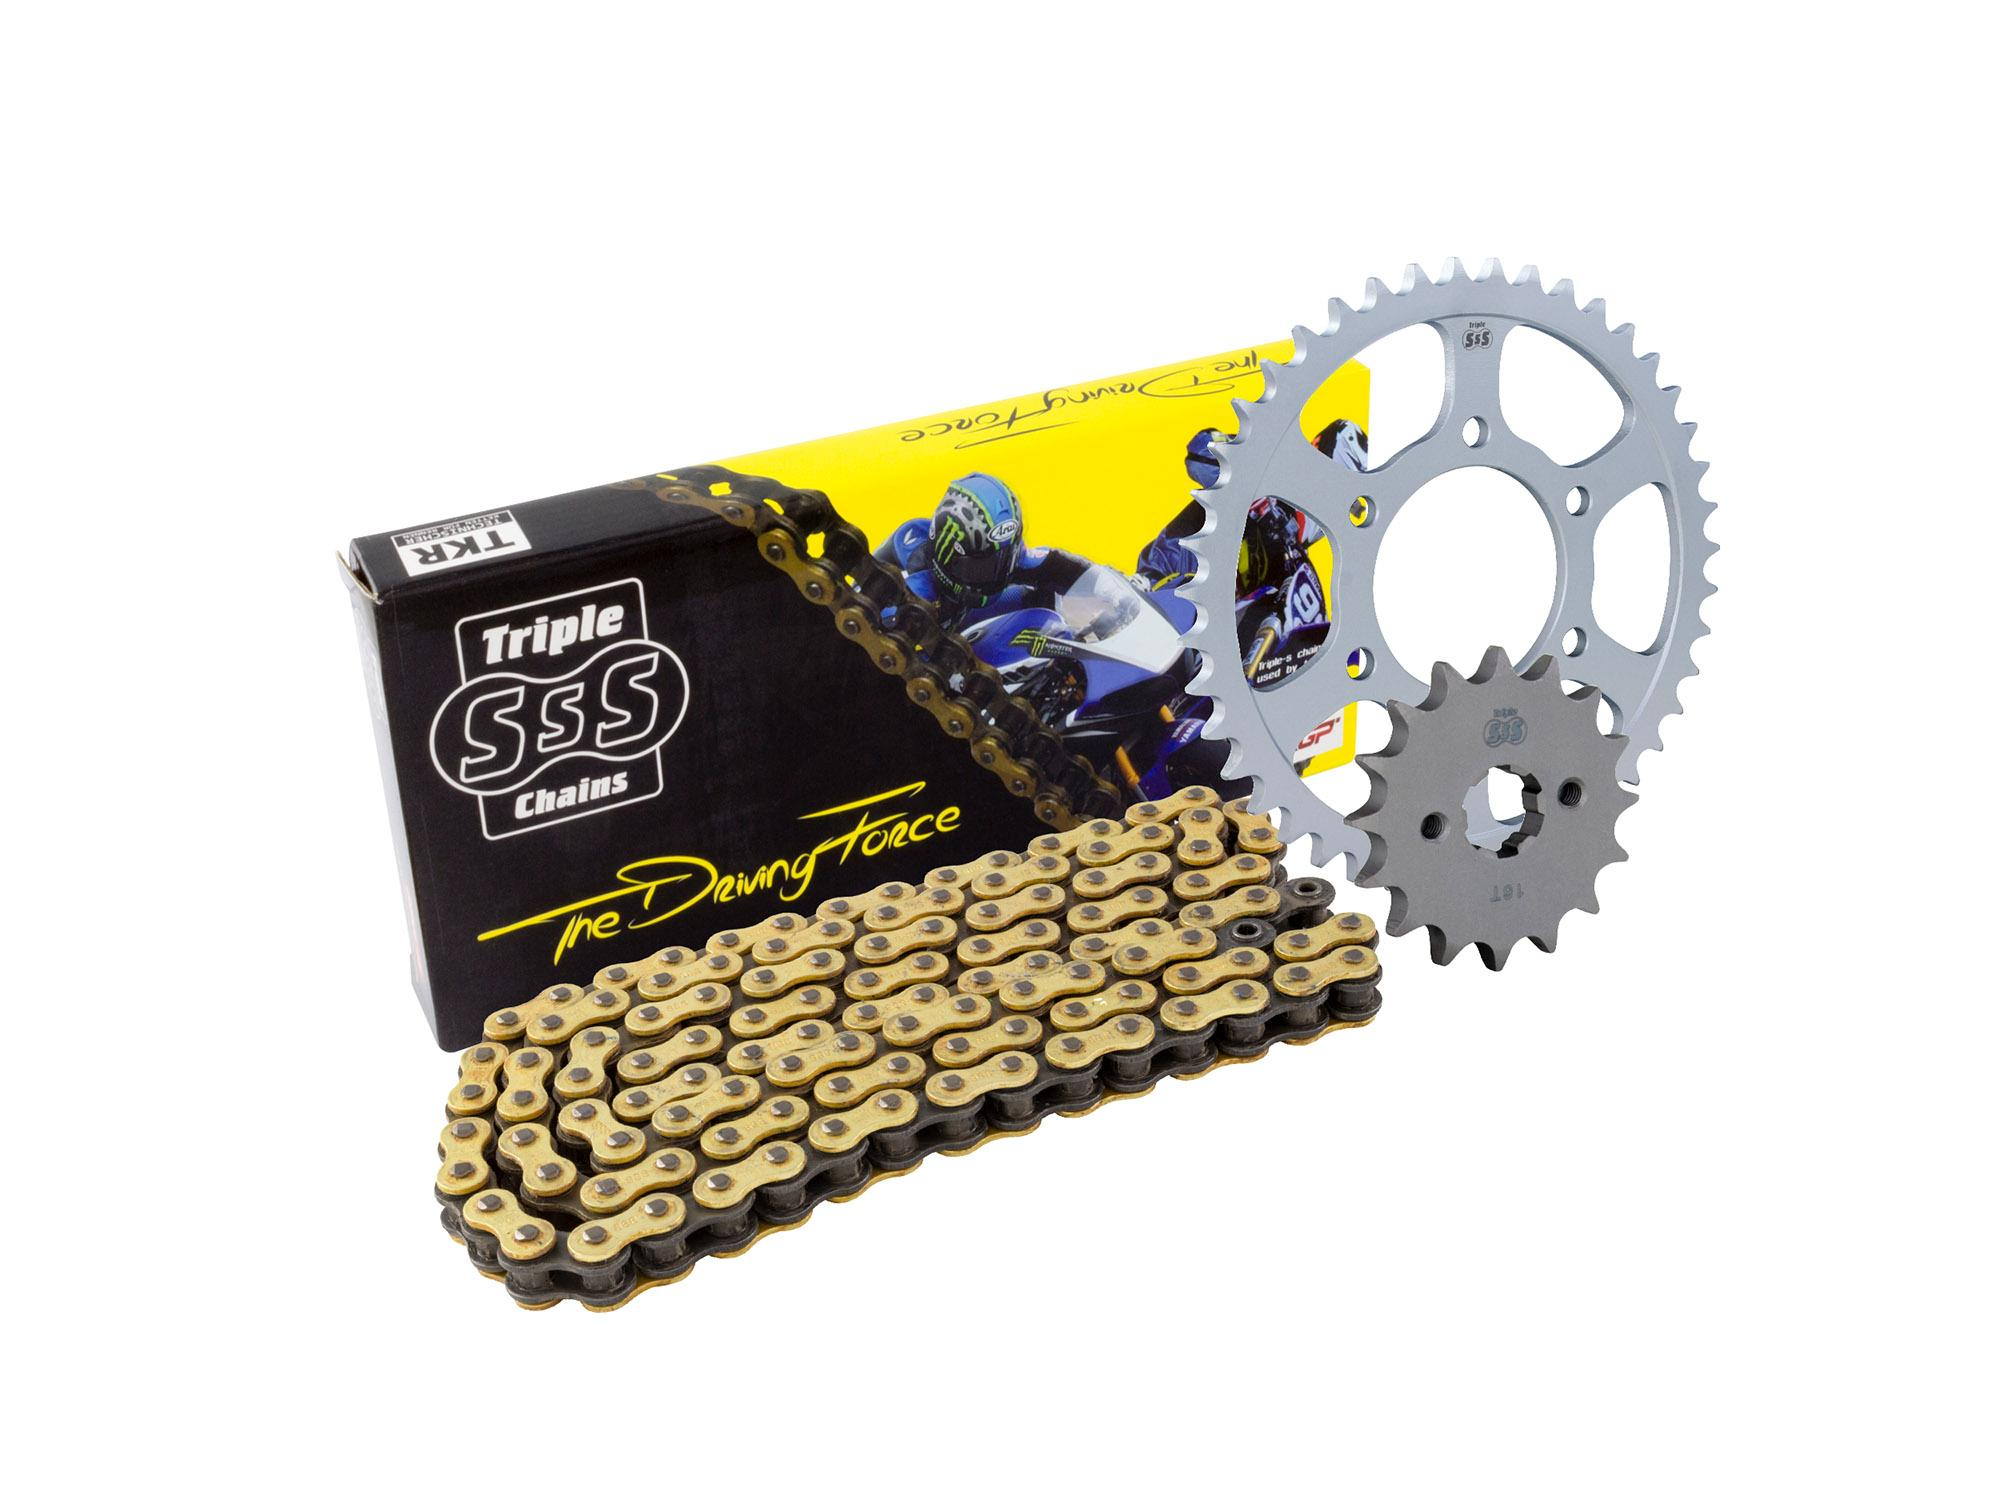 Honda CBR600 FA 11-13 Chain & Sprocket Kit: 16T Front, 45T Rear, HD O-Ring Gold Chain 525H 112Link